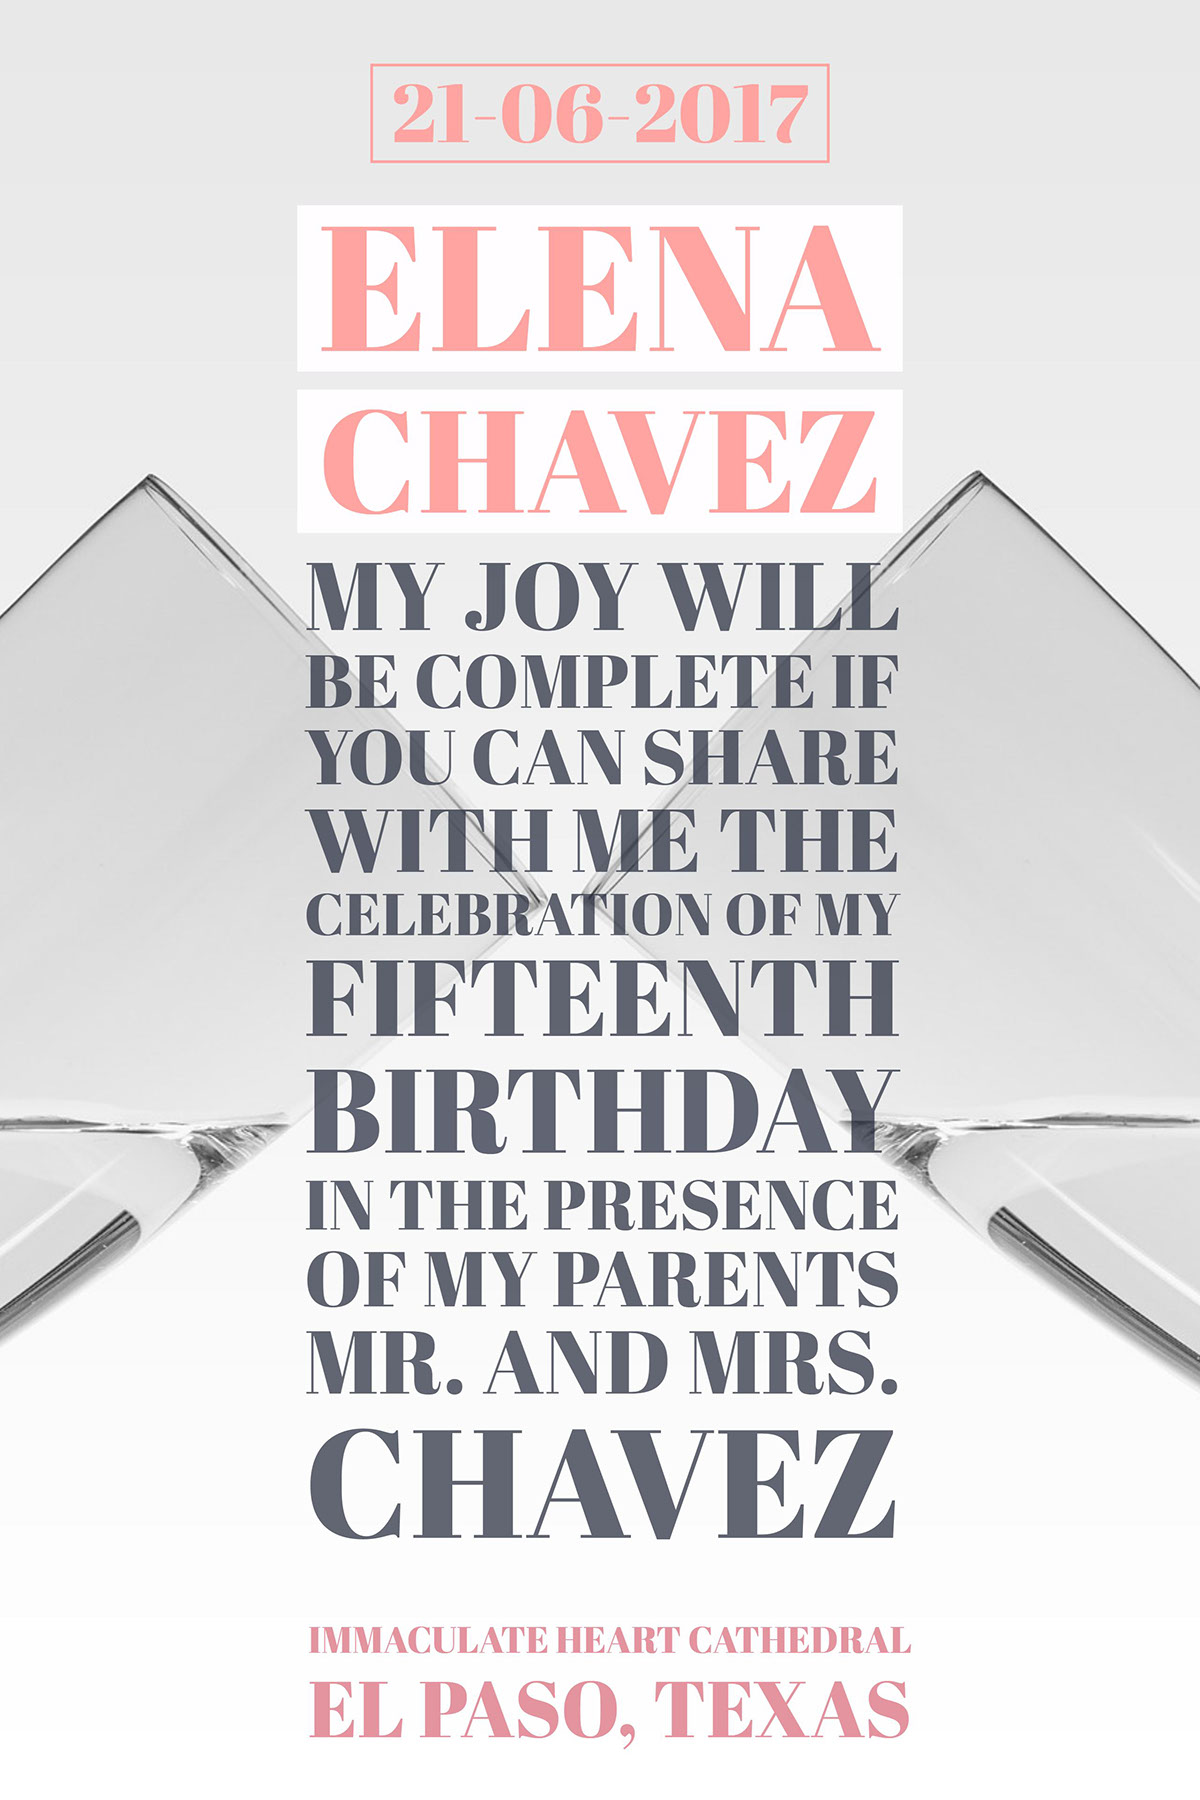 My joy will be complete if you can share with me the celebration of my Fifteenth Birthday in the presence of my parents Mr. and Mrs. Chavez  My joy will be complete if you can share with me the celebration of my Fifteenth Birthday in the presence of my parents Mr. and Mrs. Chavez  Elena Chavez Immaculate Heart Cathedral El Paso, Texas 21-06-2017